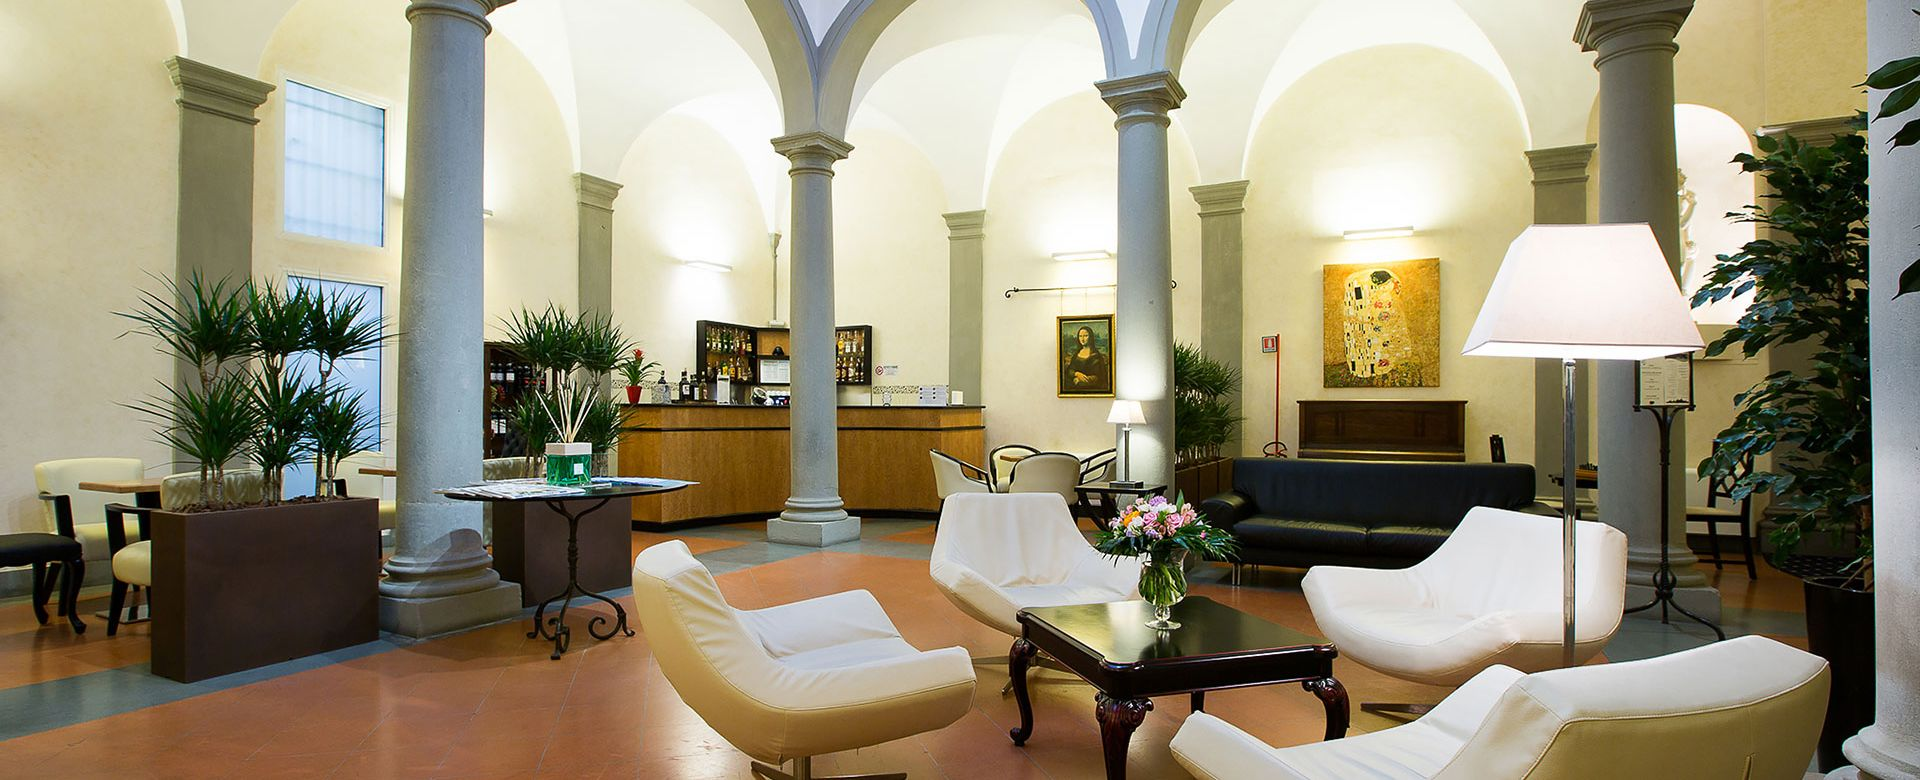 3 Hotel Centrale Firenze Lounge Bar